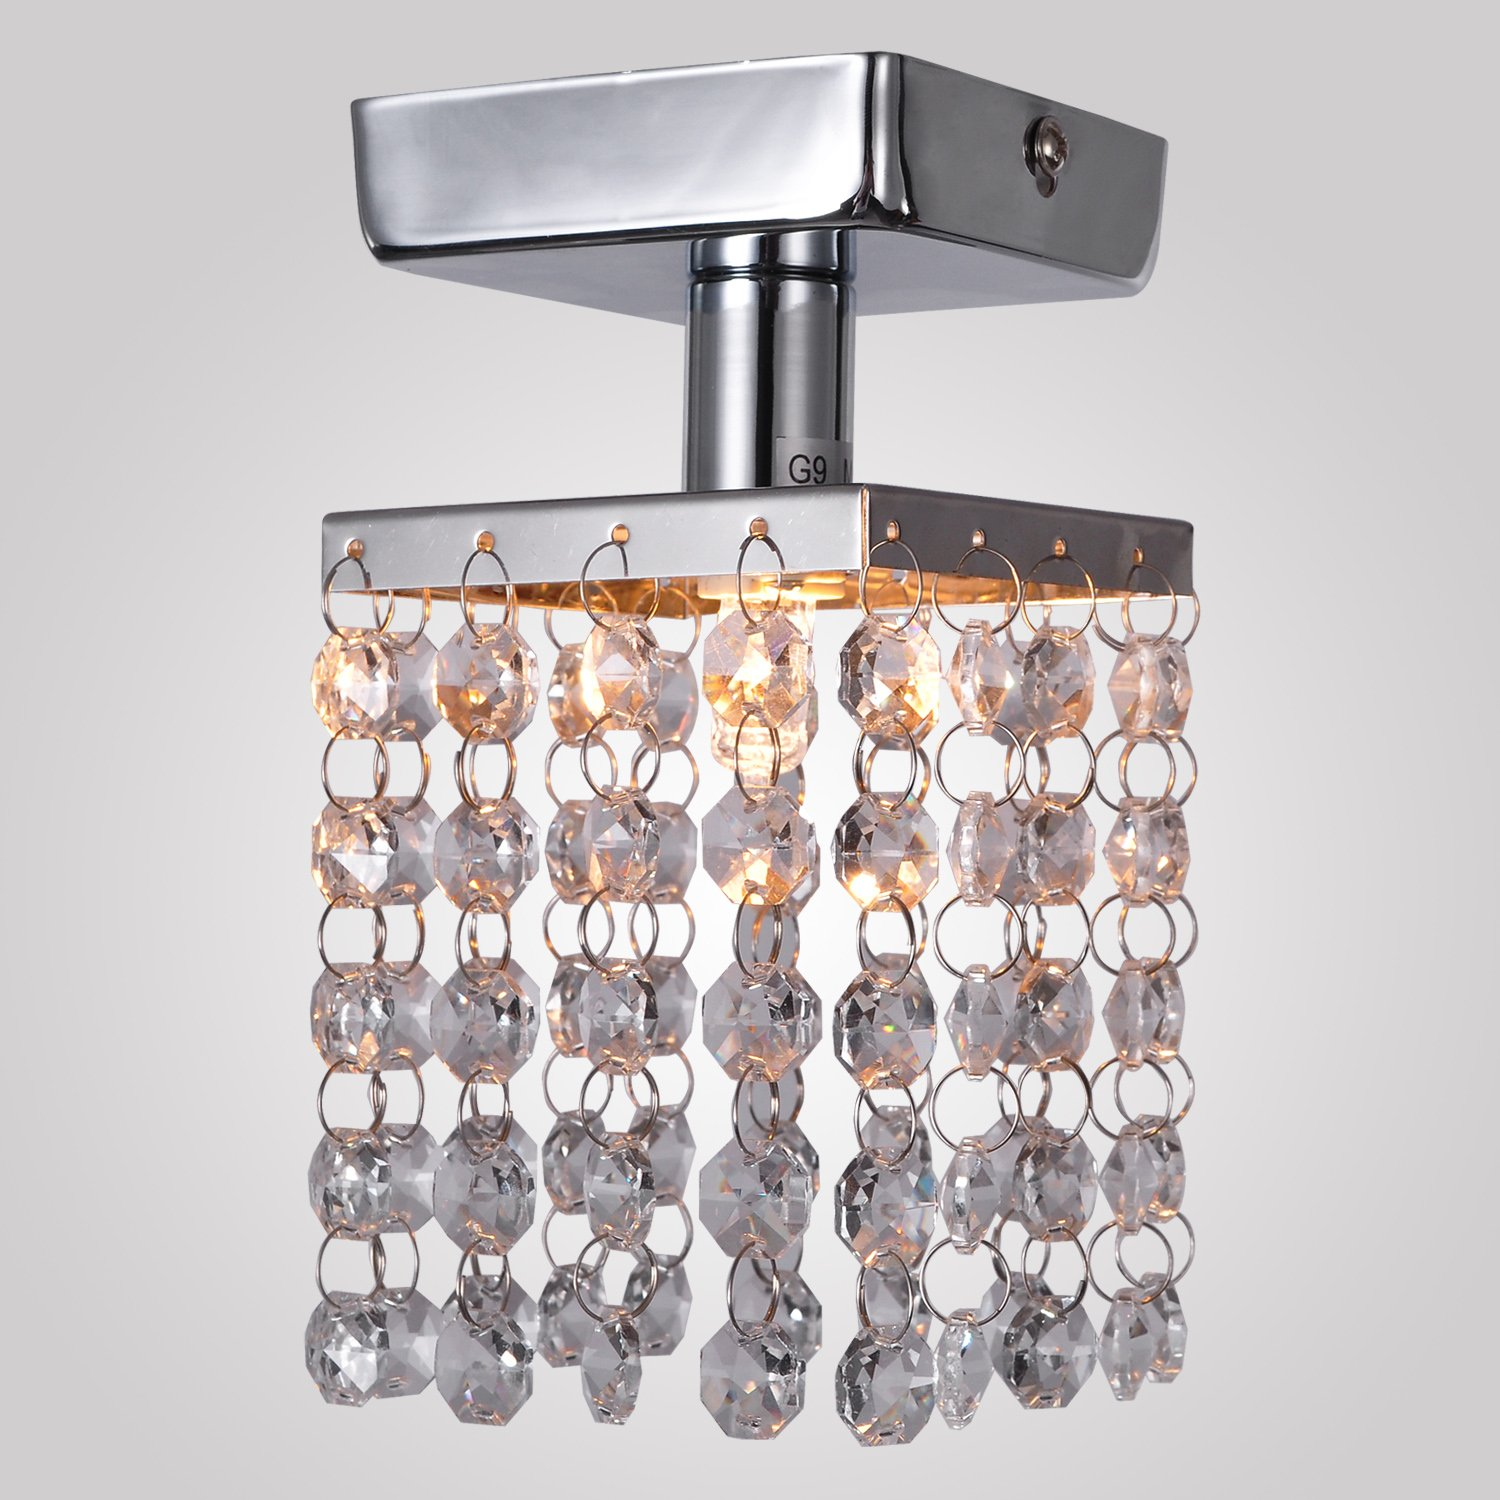 Lightinthebox mini semi flush mount in crystal chrome finish lightinthebox mini semi flush mount in crystal chrome finish modern home ceiling light fixture flush mount pendant light chandeliers lighting arubaitofo Choice Image